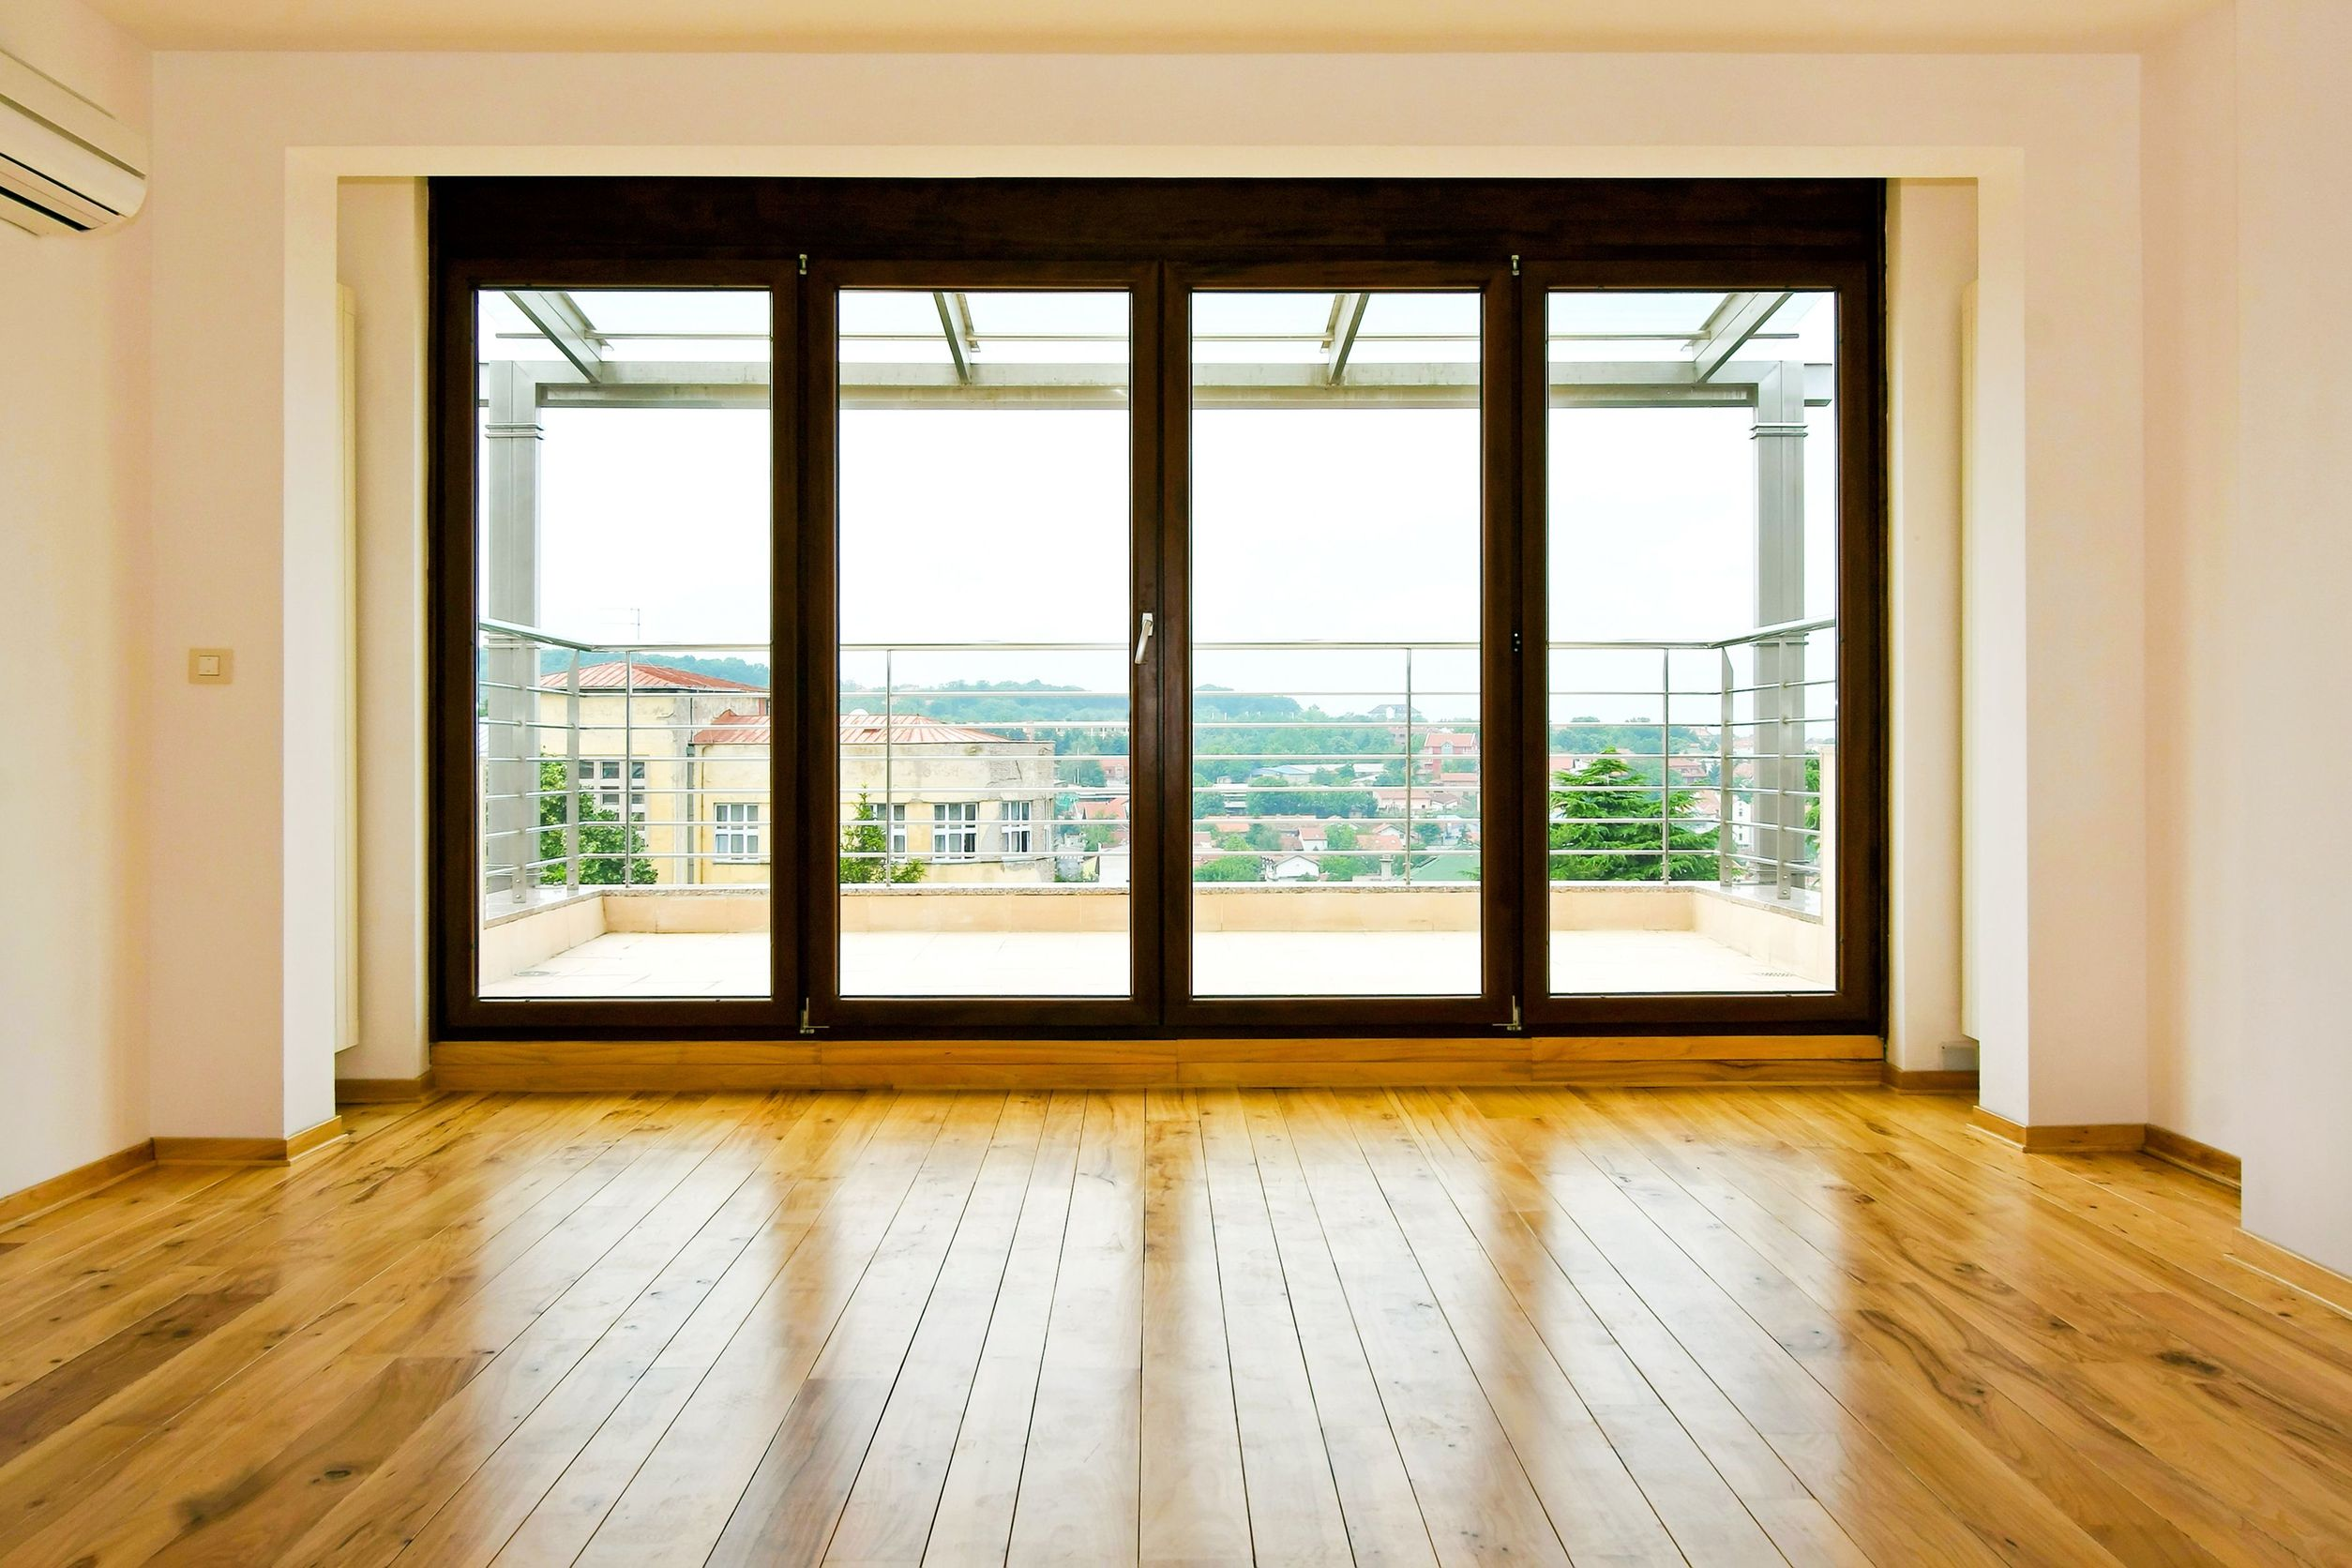 3 Benefits Of Window Door Replacement From Walton S Top Home Remodeling Company November 27 2017